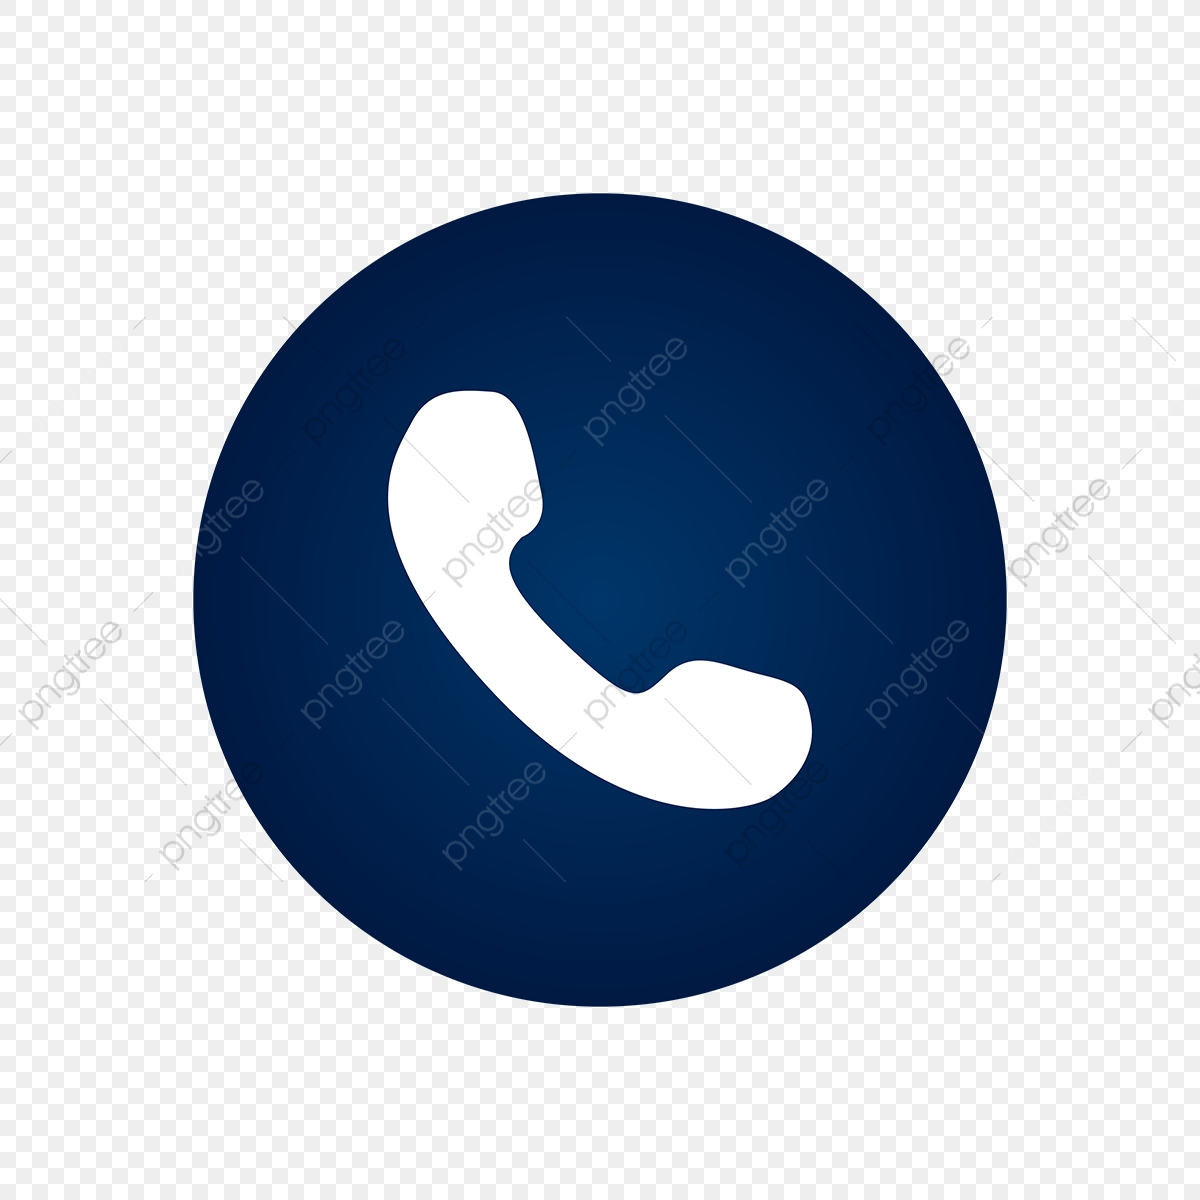 Phone Icon Icon Symbol Png And Vector With Transparent